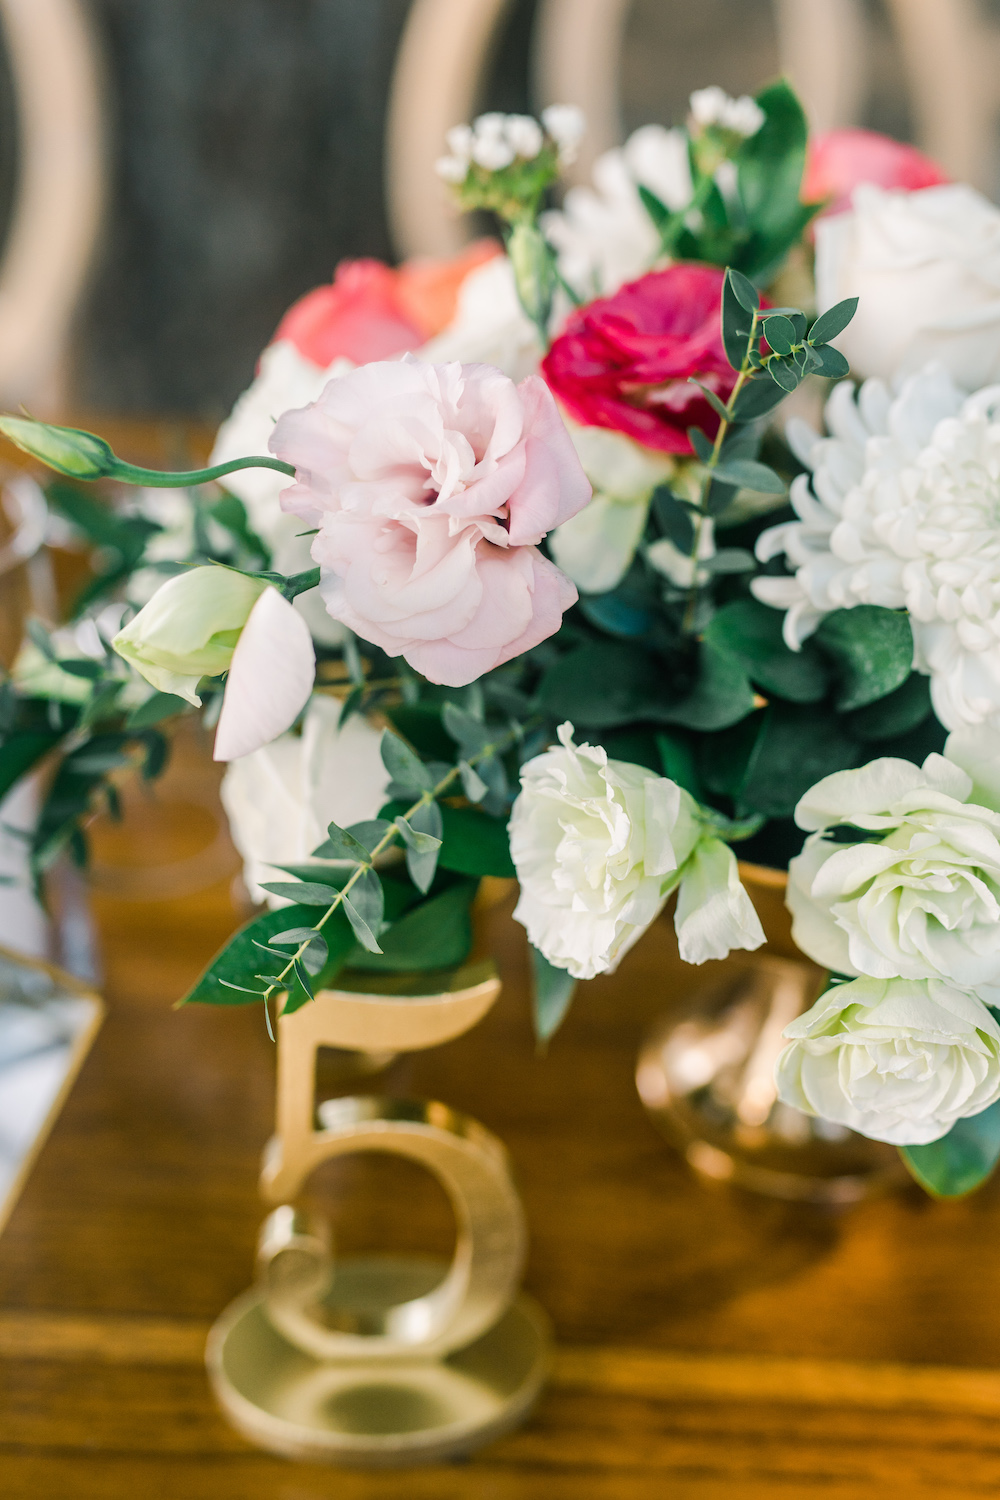 catherineannphotographywedding8418jessicapeter314.jpg